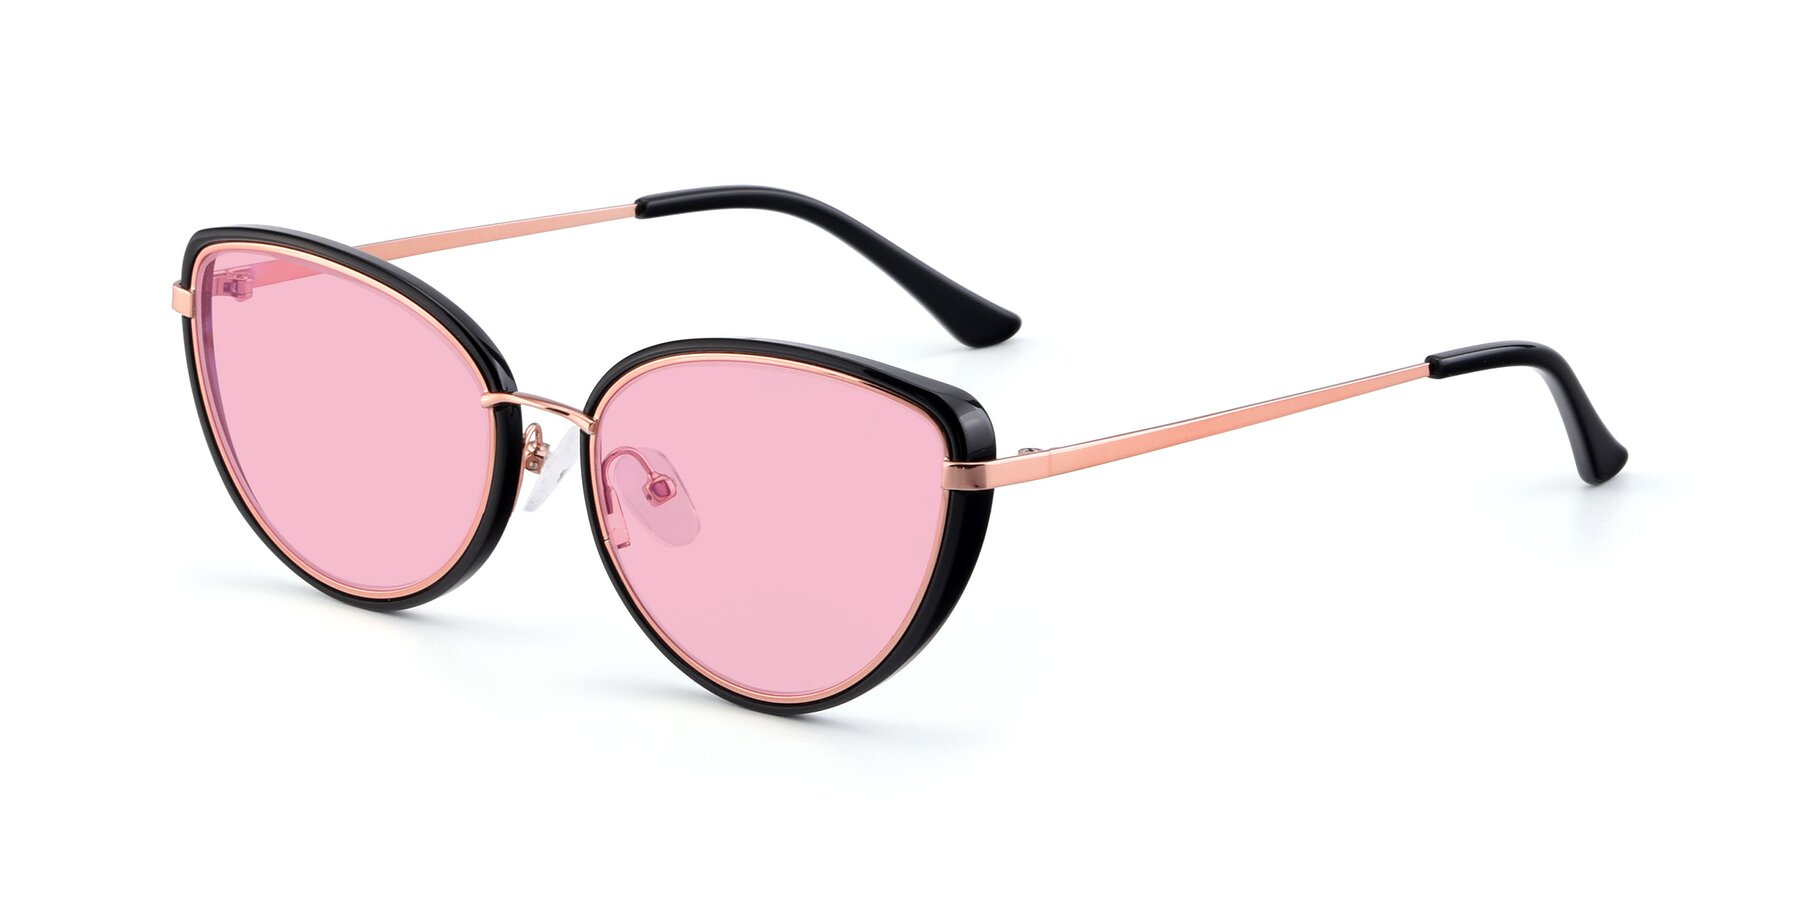 Angle of 17706 in Black-Rose Gold with Medium Pink Tinted Lenses